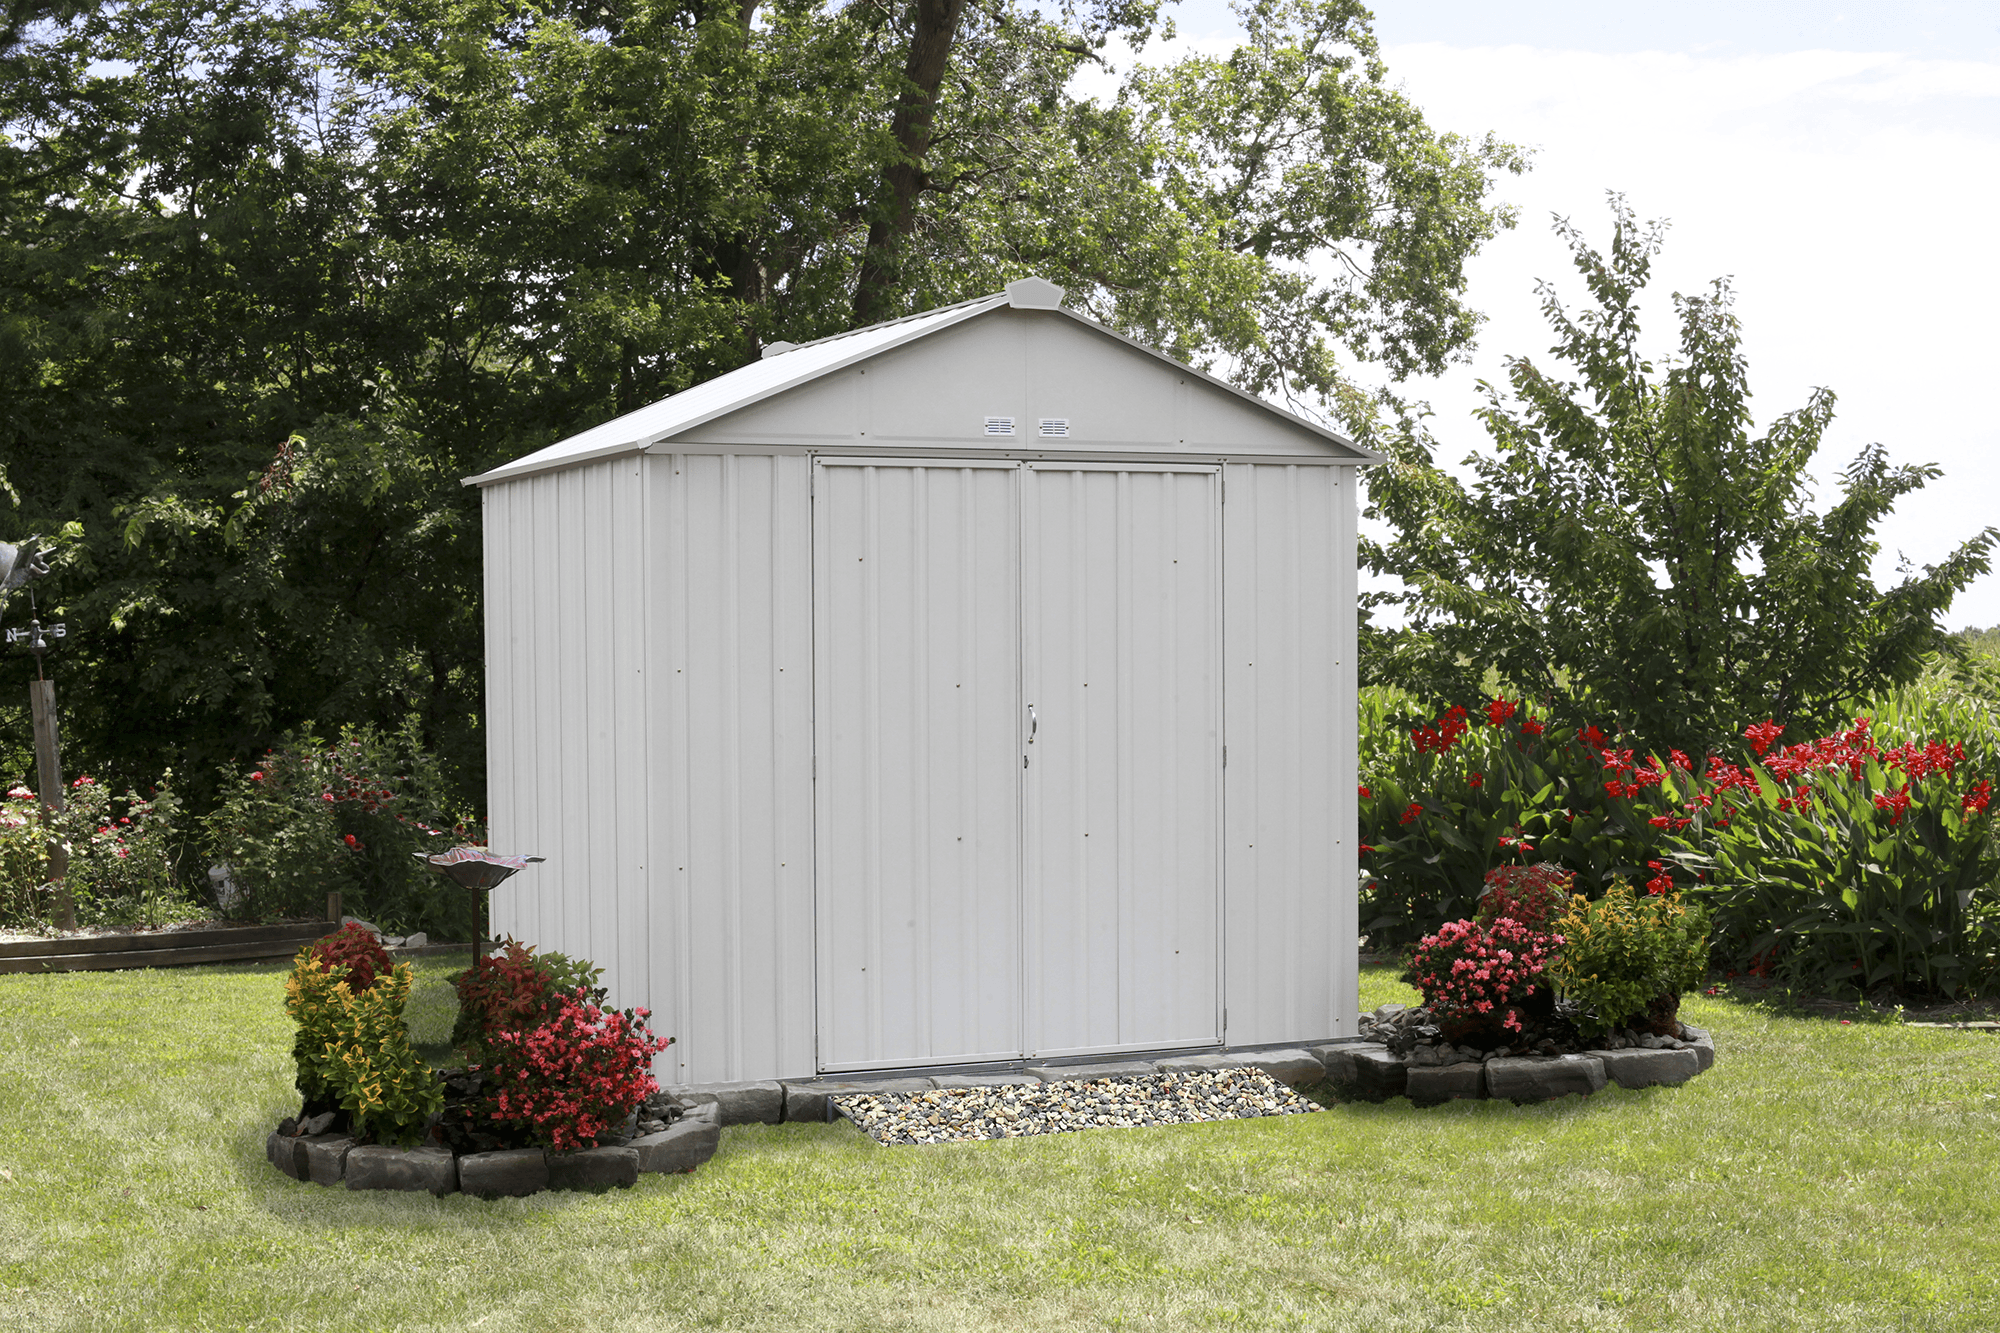 Steel Storage Shed 8 x 7 ft. Galvanized High Gable Cream